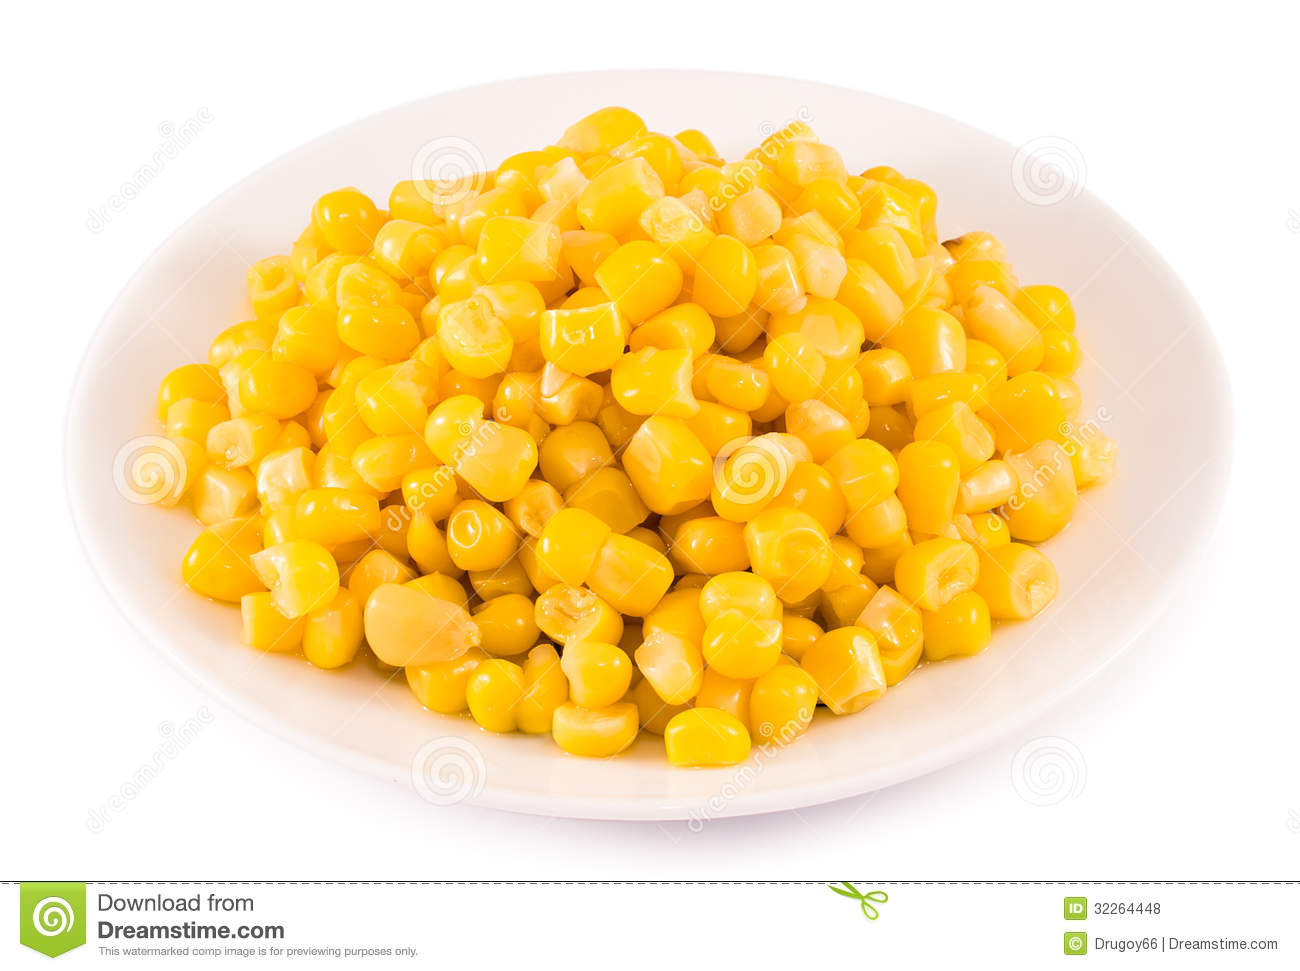 Corn Conserve Royalty Free Stock Photos Image 32264448